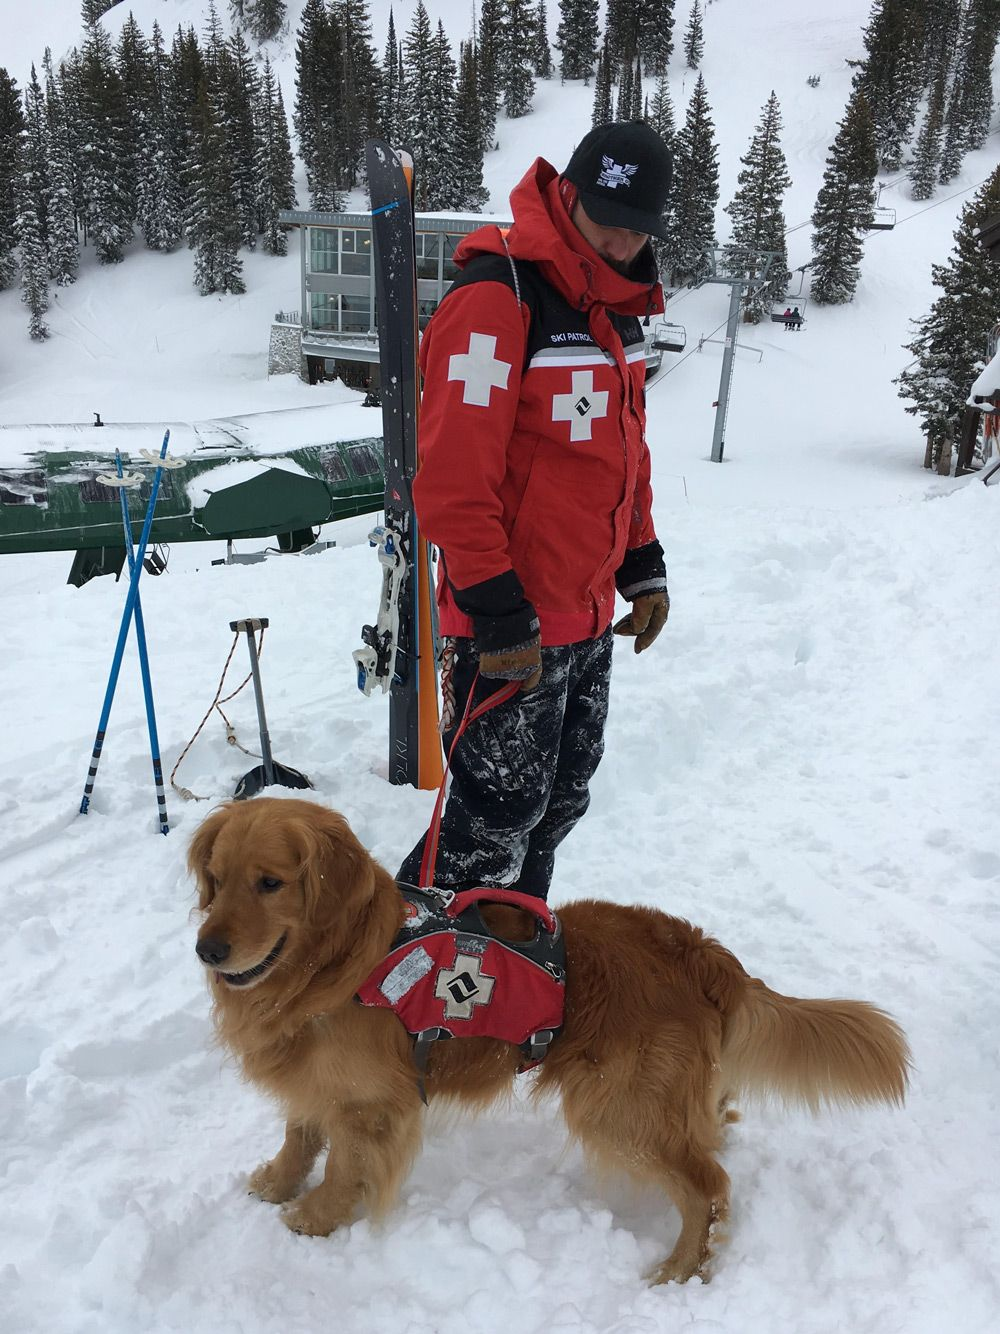 Ruffwear Takes Design To New Heights For Ski Patrol And Sar Dogs